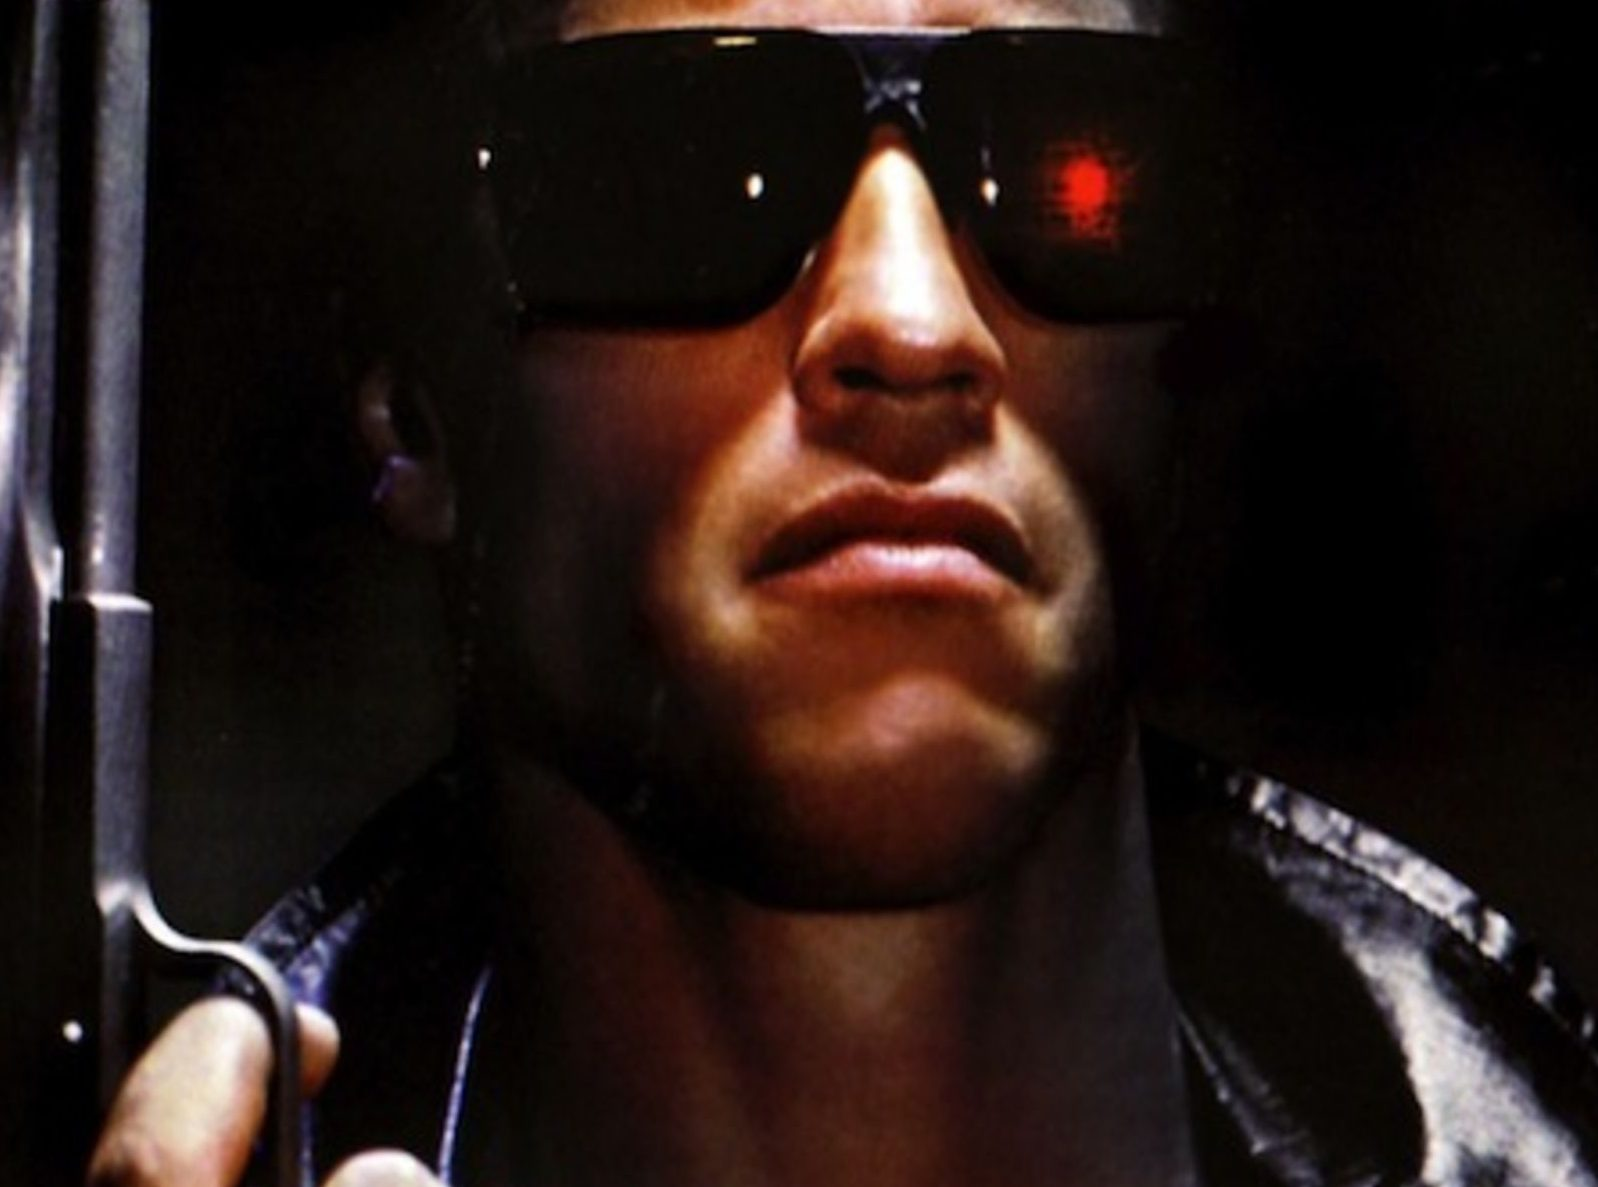 theterminator e1626353255633 20 Things You Might Not Have Realised About The Terminator